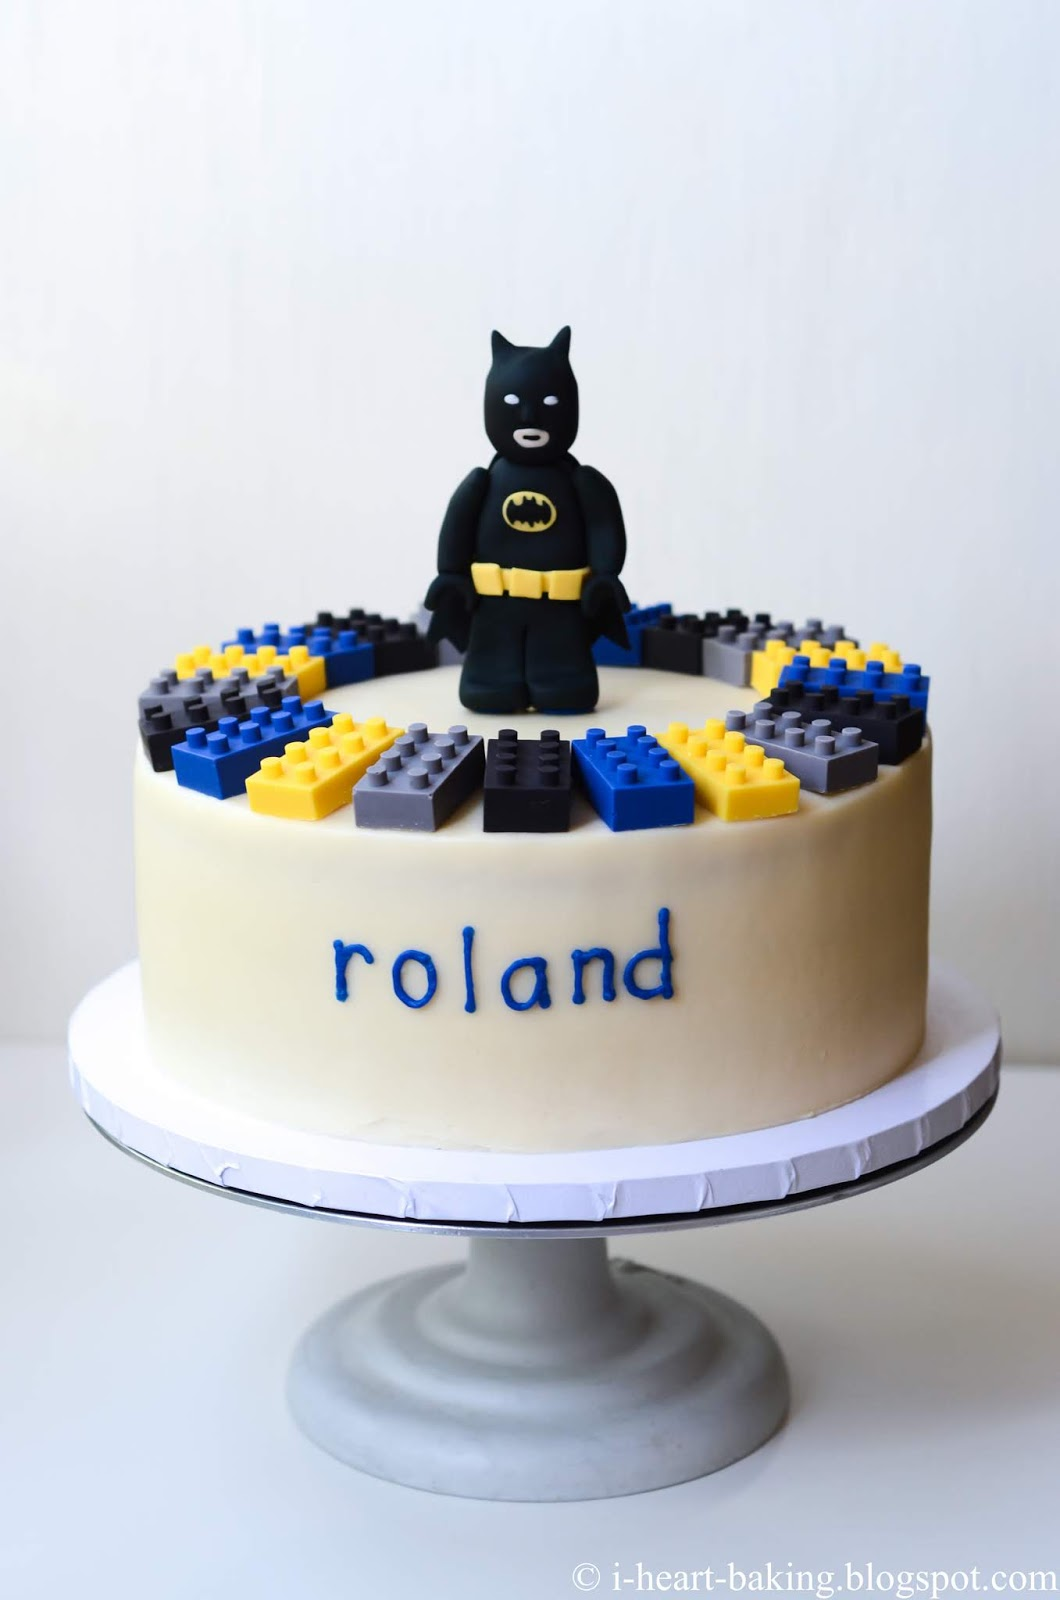 Astounding I Heart Baking Lego Batman Birthday Cake With Handmade Fondant Birthday Cards Printable Nowaargucafe Filternl